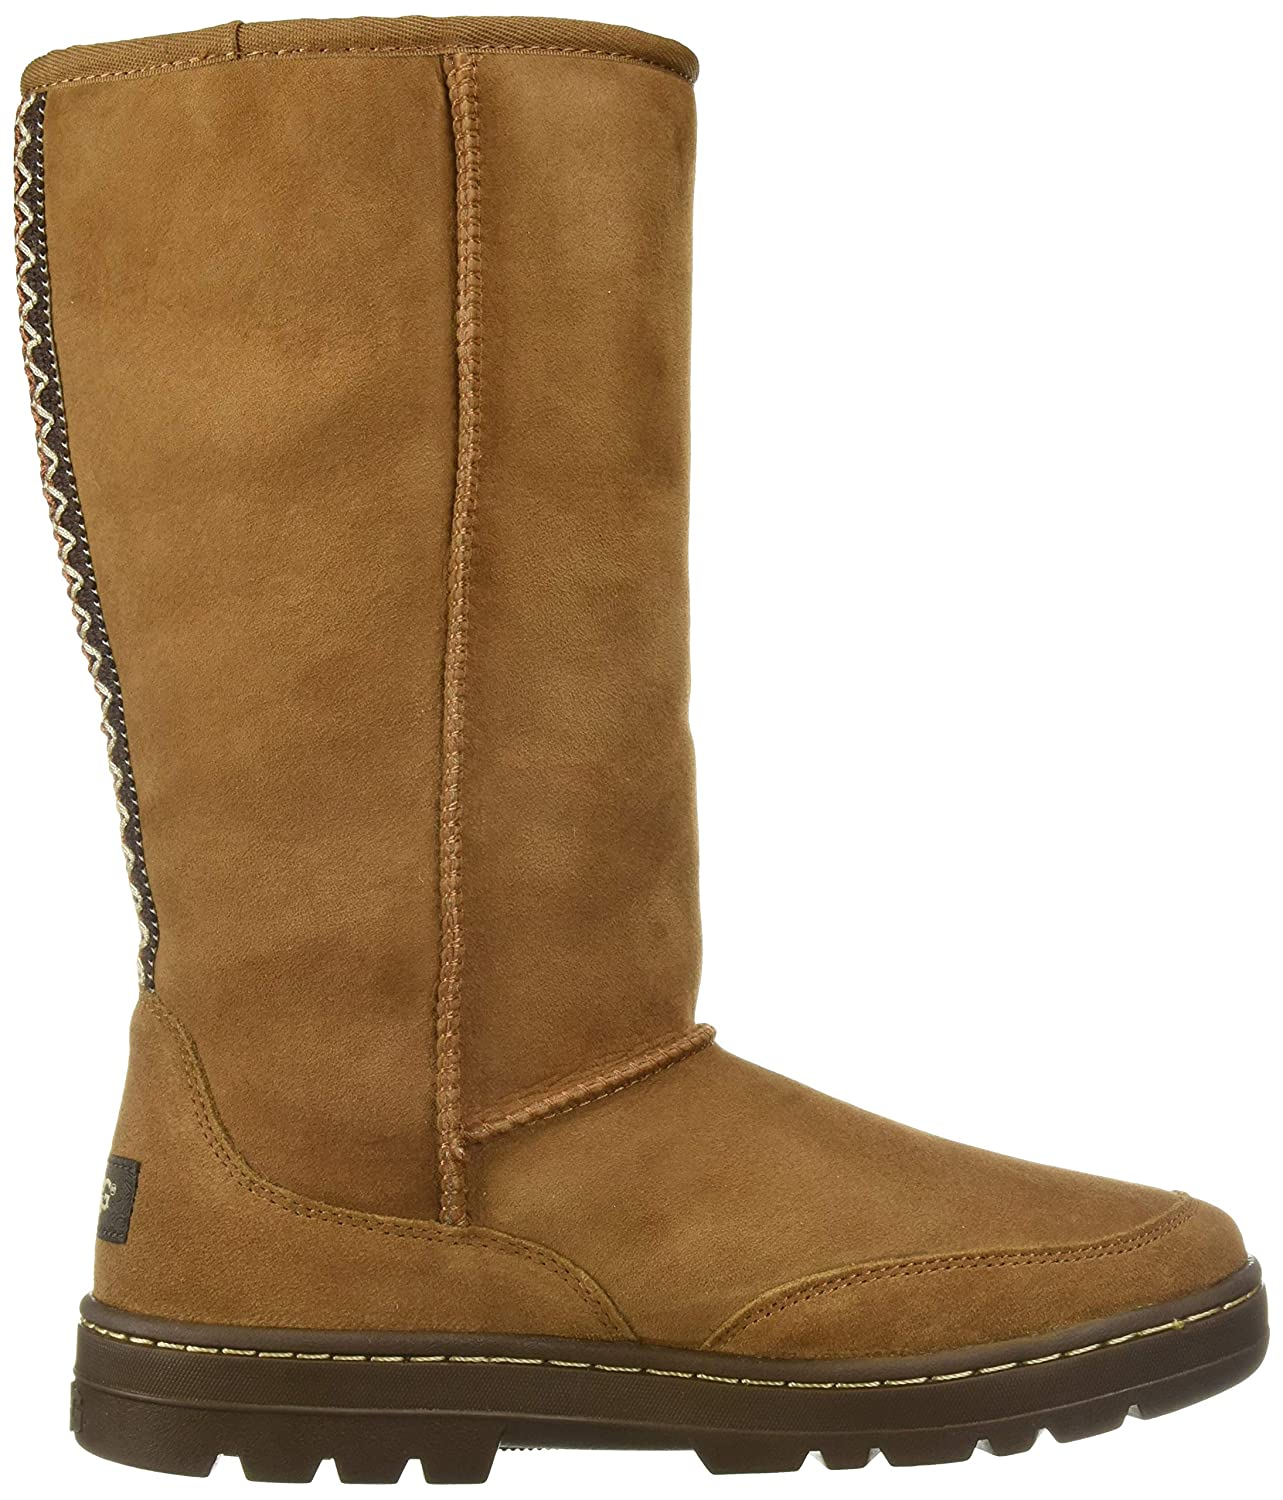 635aaec5a40 UGG Women's W Ultra Tall Revival Fashion Boot